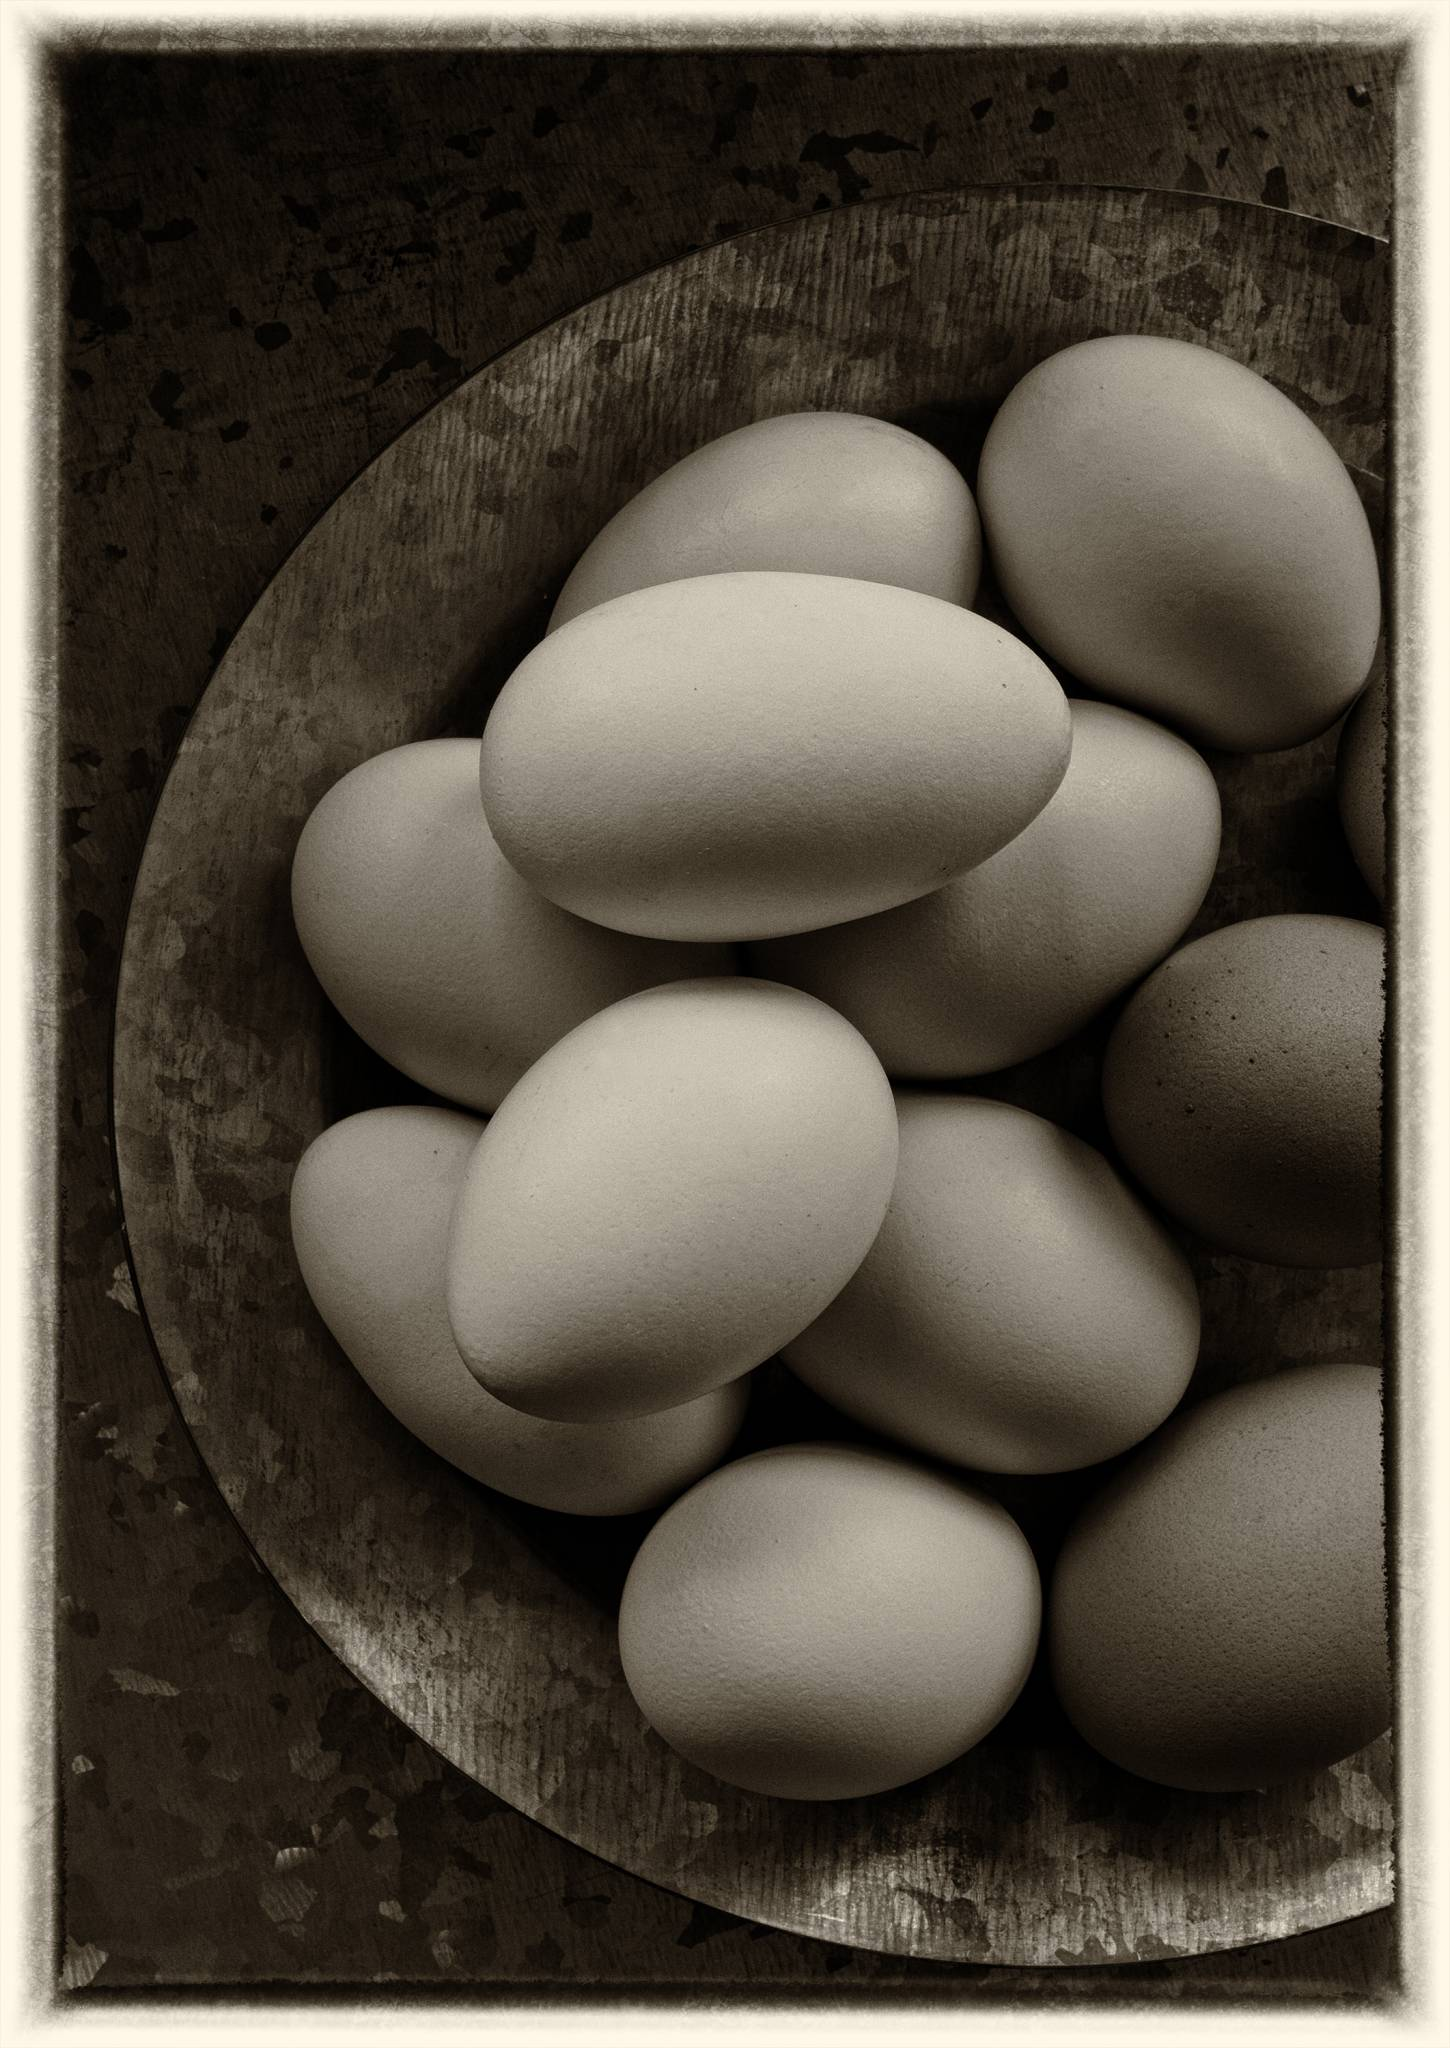 Galvanized steel with Araucana & brown eggs